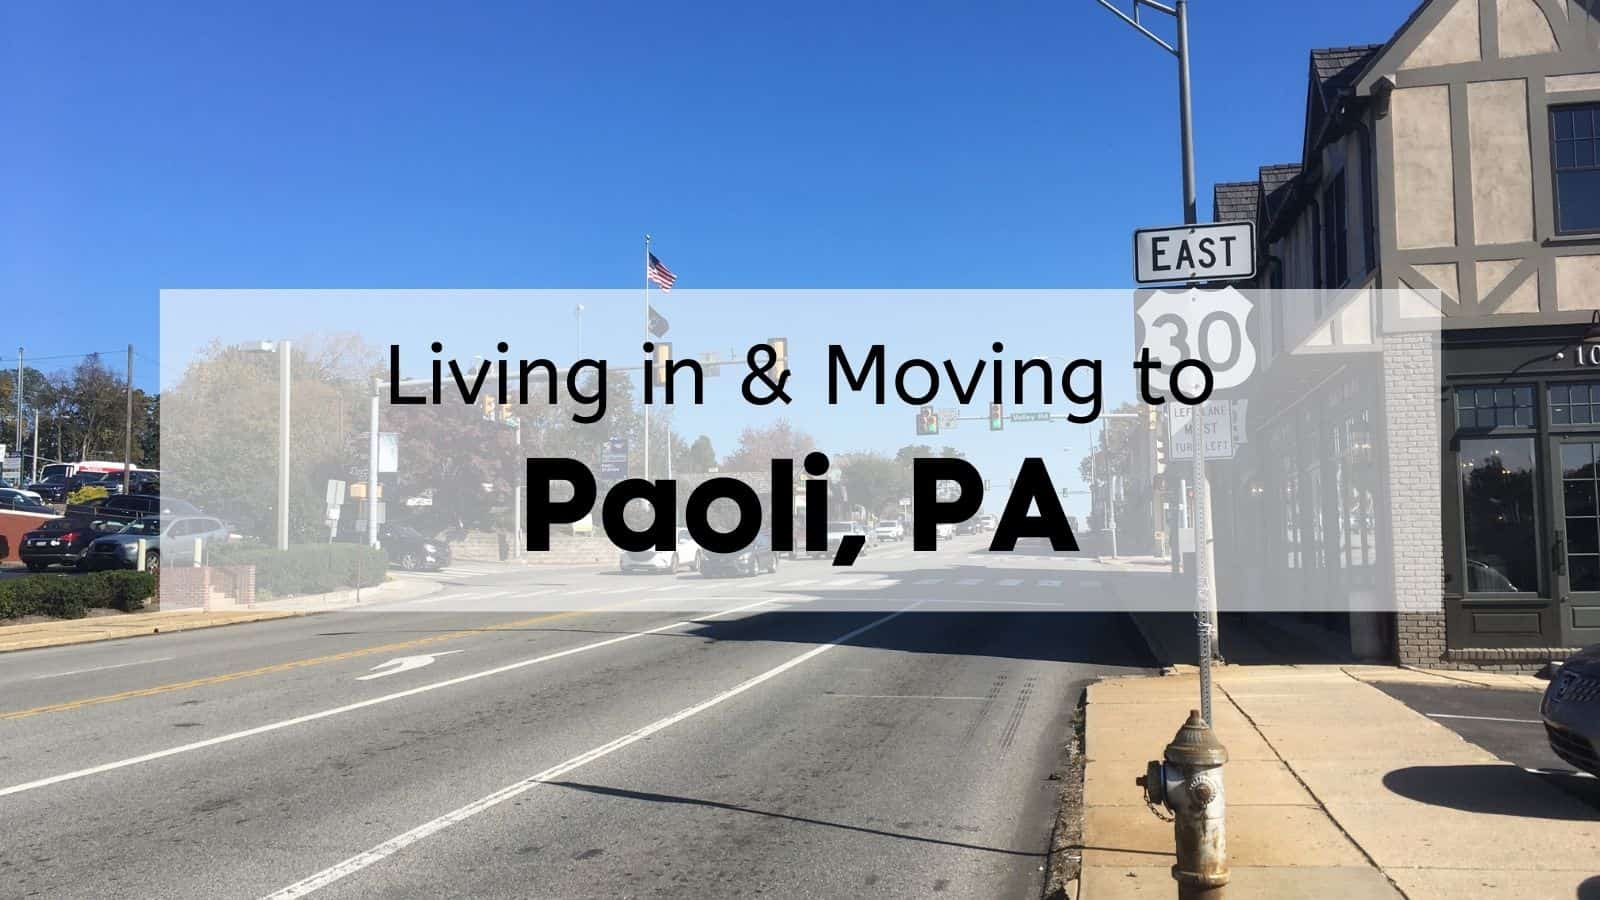 Living in & Moving to Paoli, PA